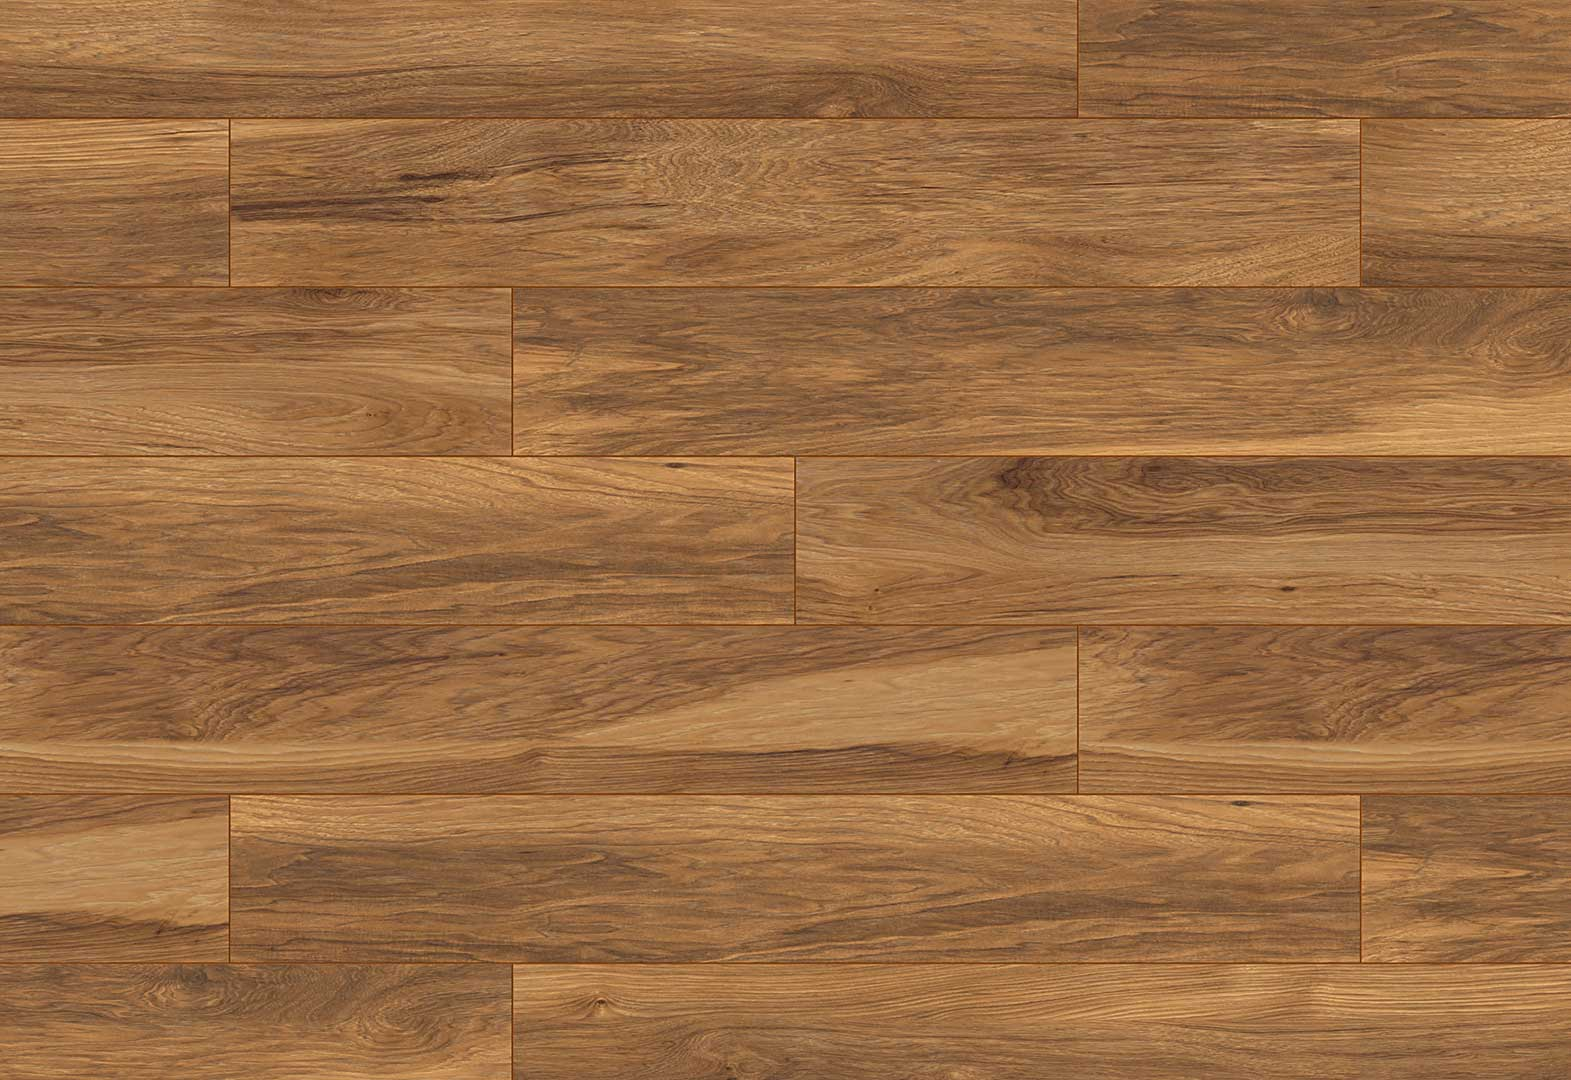 Handscraped Laminate Floors Appalachian Hickory